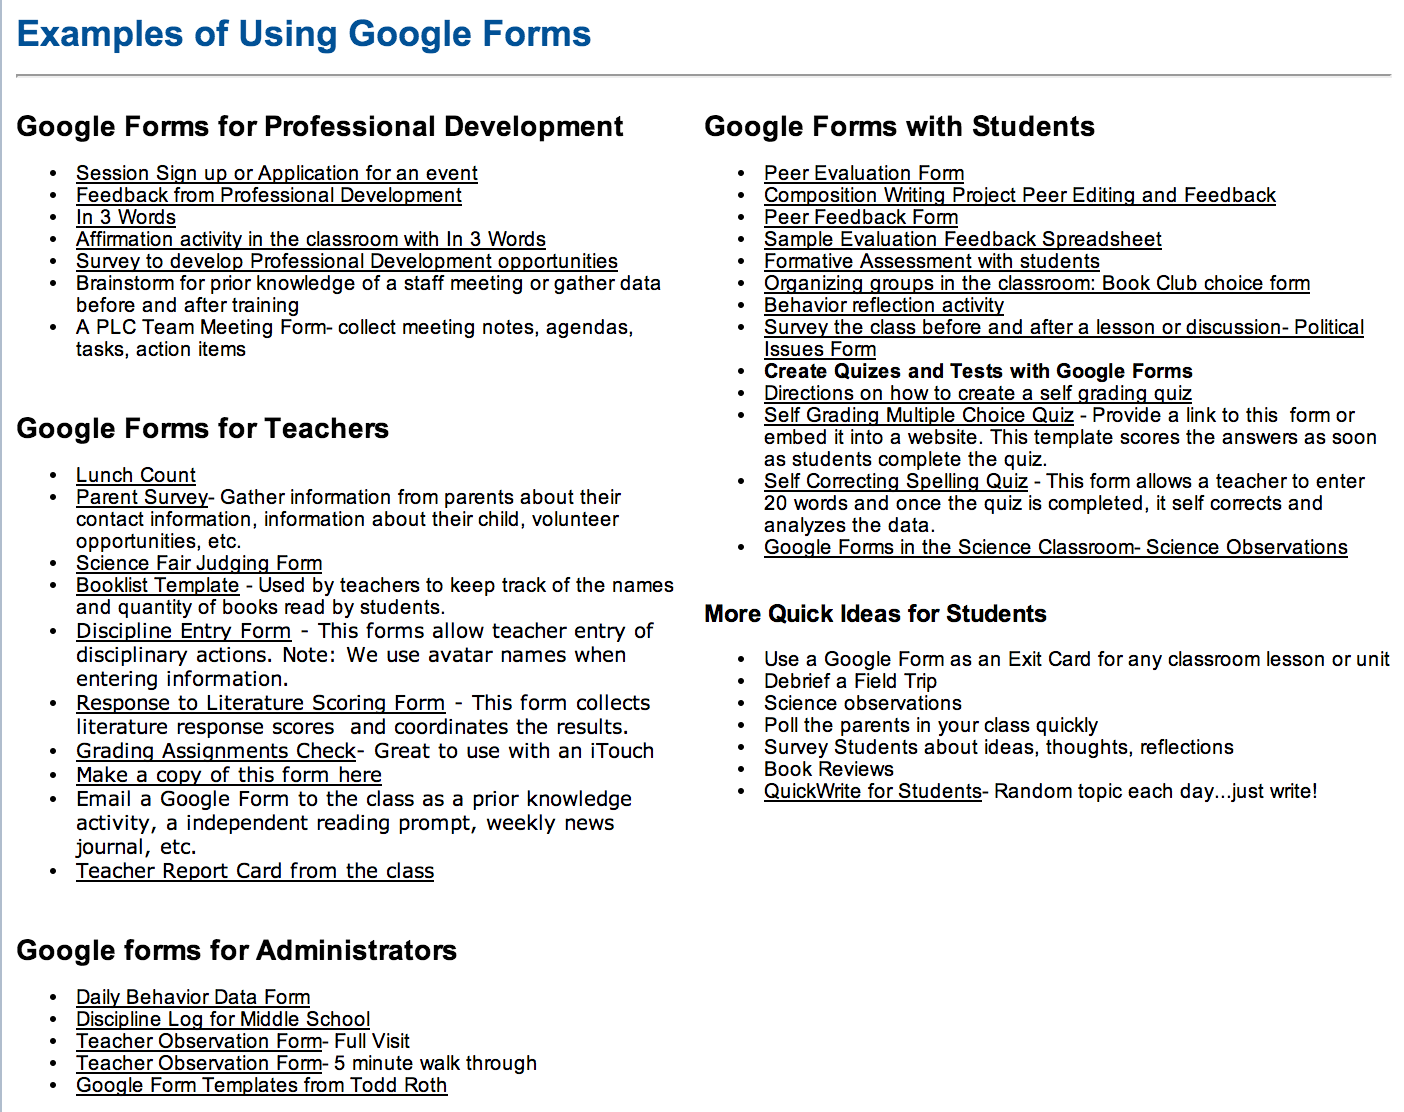 Tons of Google Forms for Teachers, Administrators and Students ...